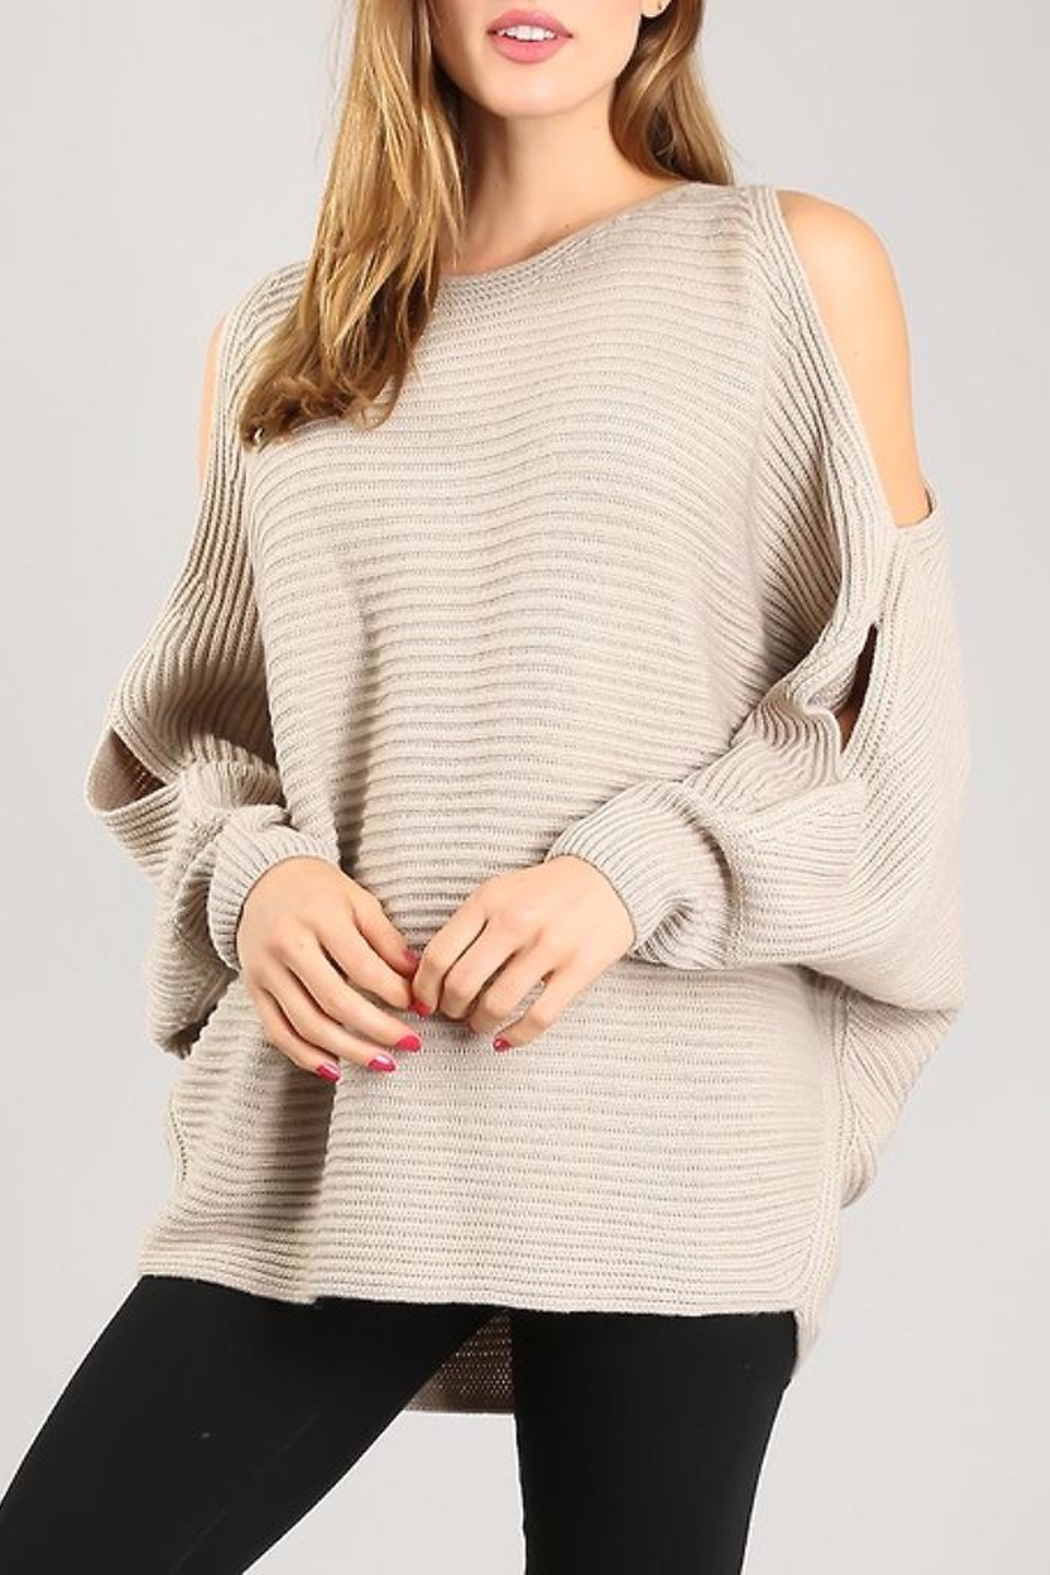 People Outfitter Ever Beautiful Sweater - Main Image